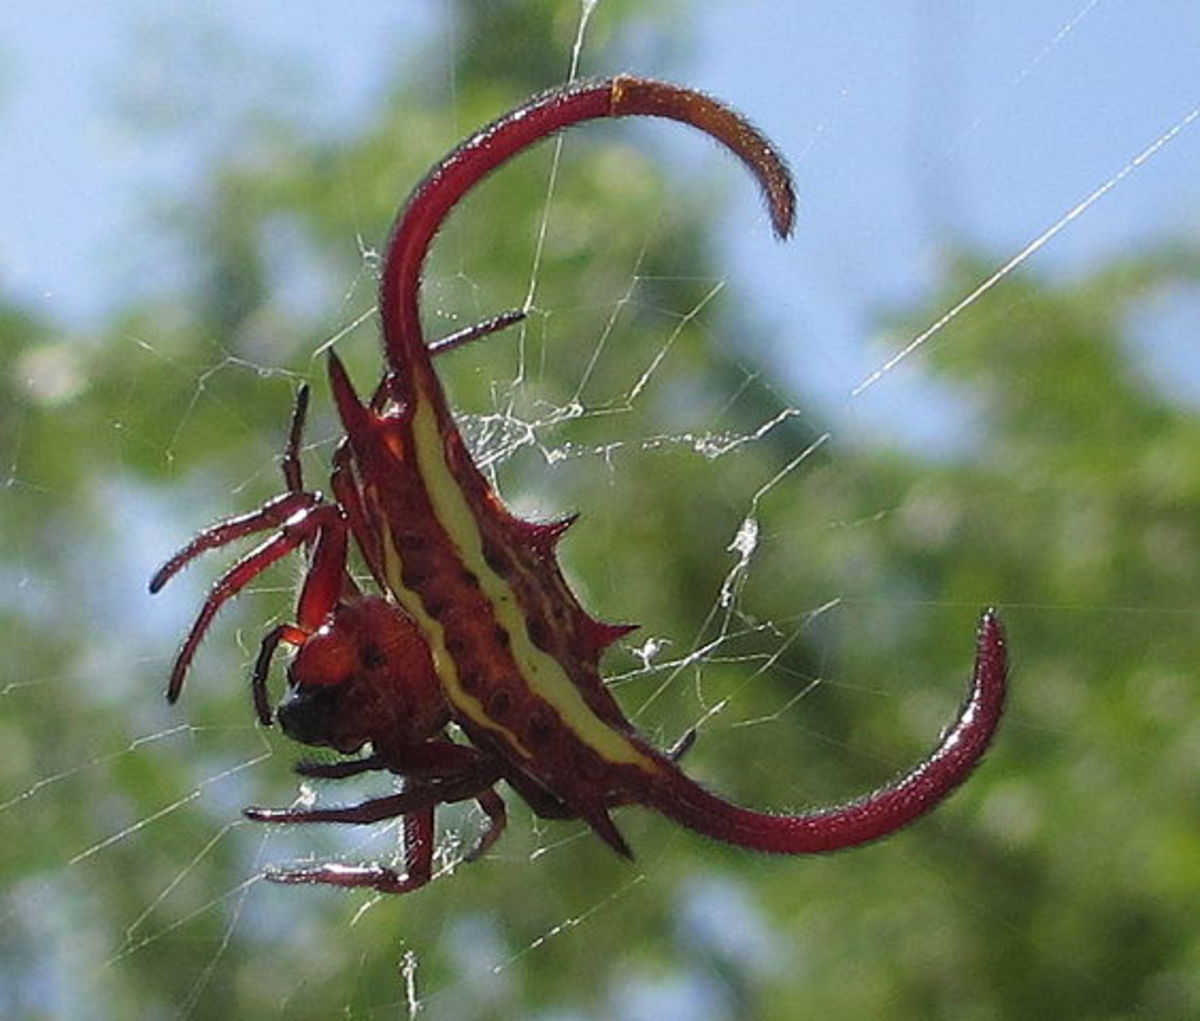 Spider with fangs. In Mecufi district of Mozambique, close to the sea coast.